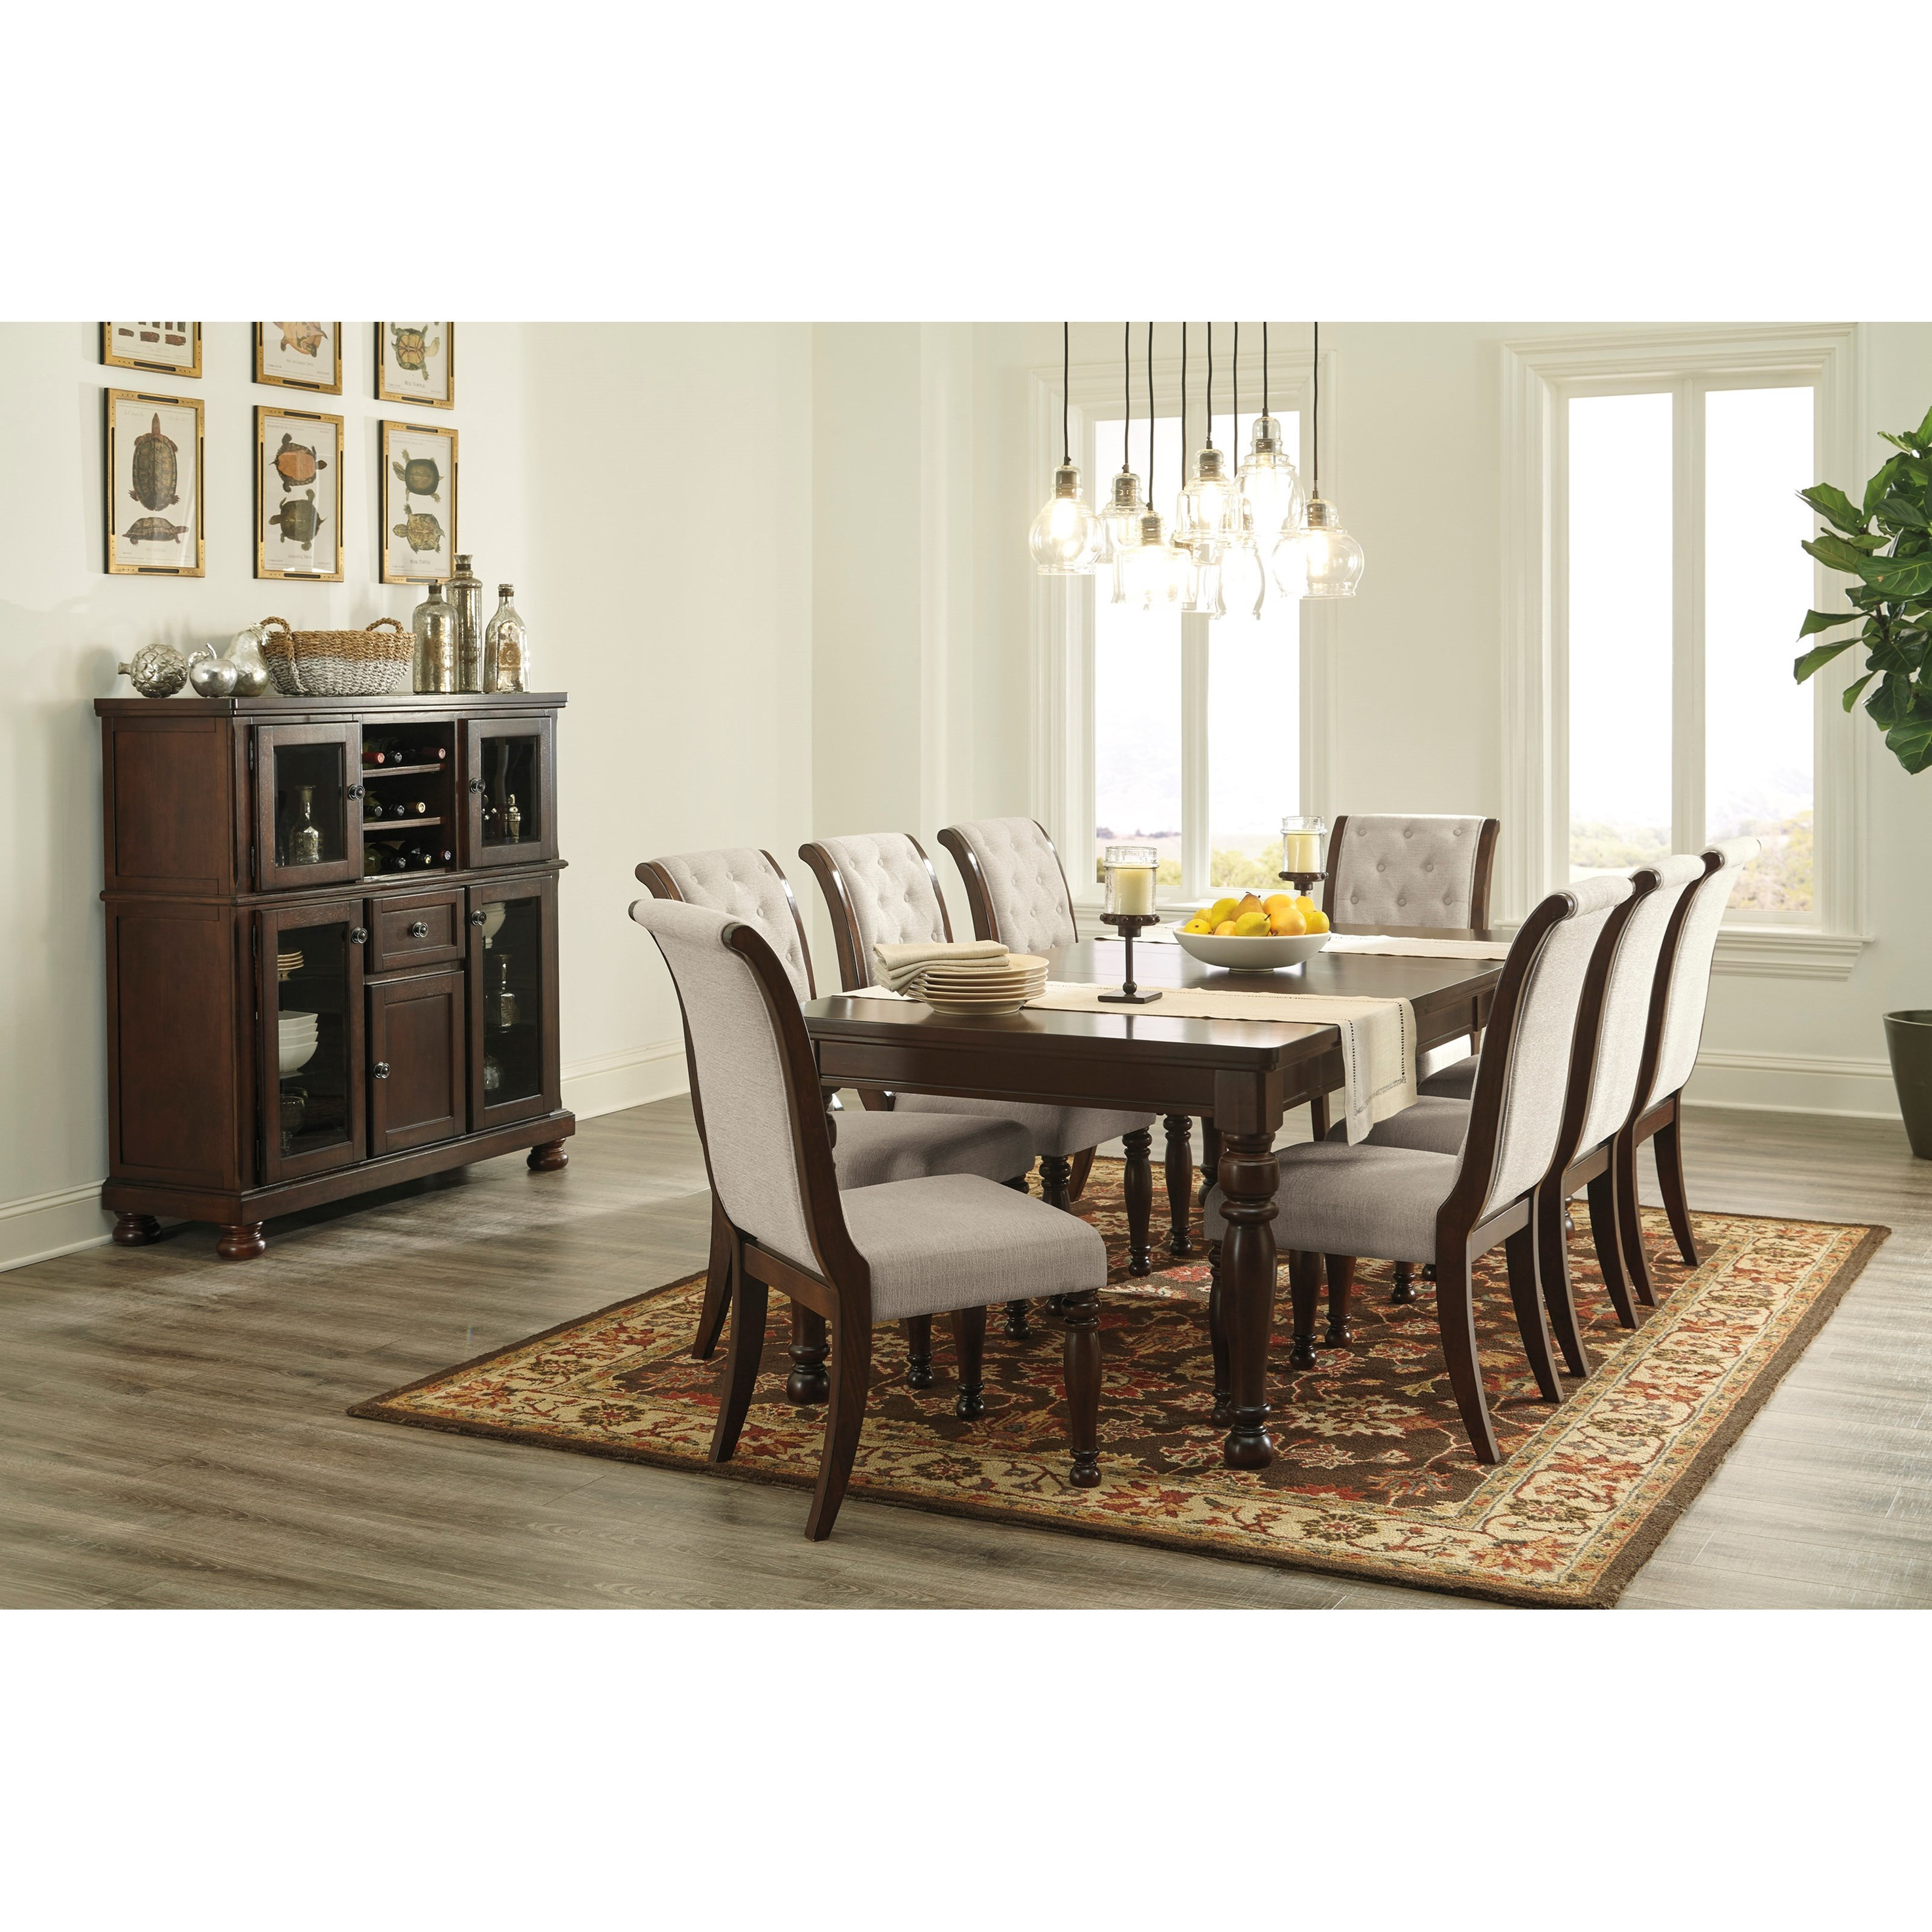 Porter Formal Dining Room Group by Ashley Furniture at Lapeer Furniture & Mattress Center